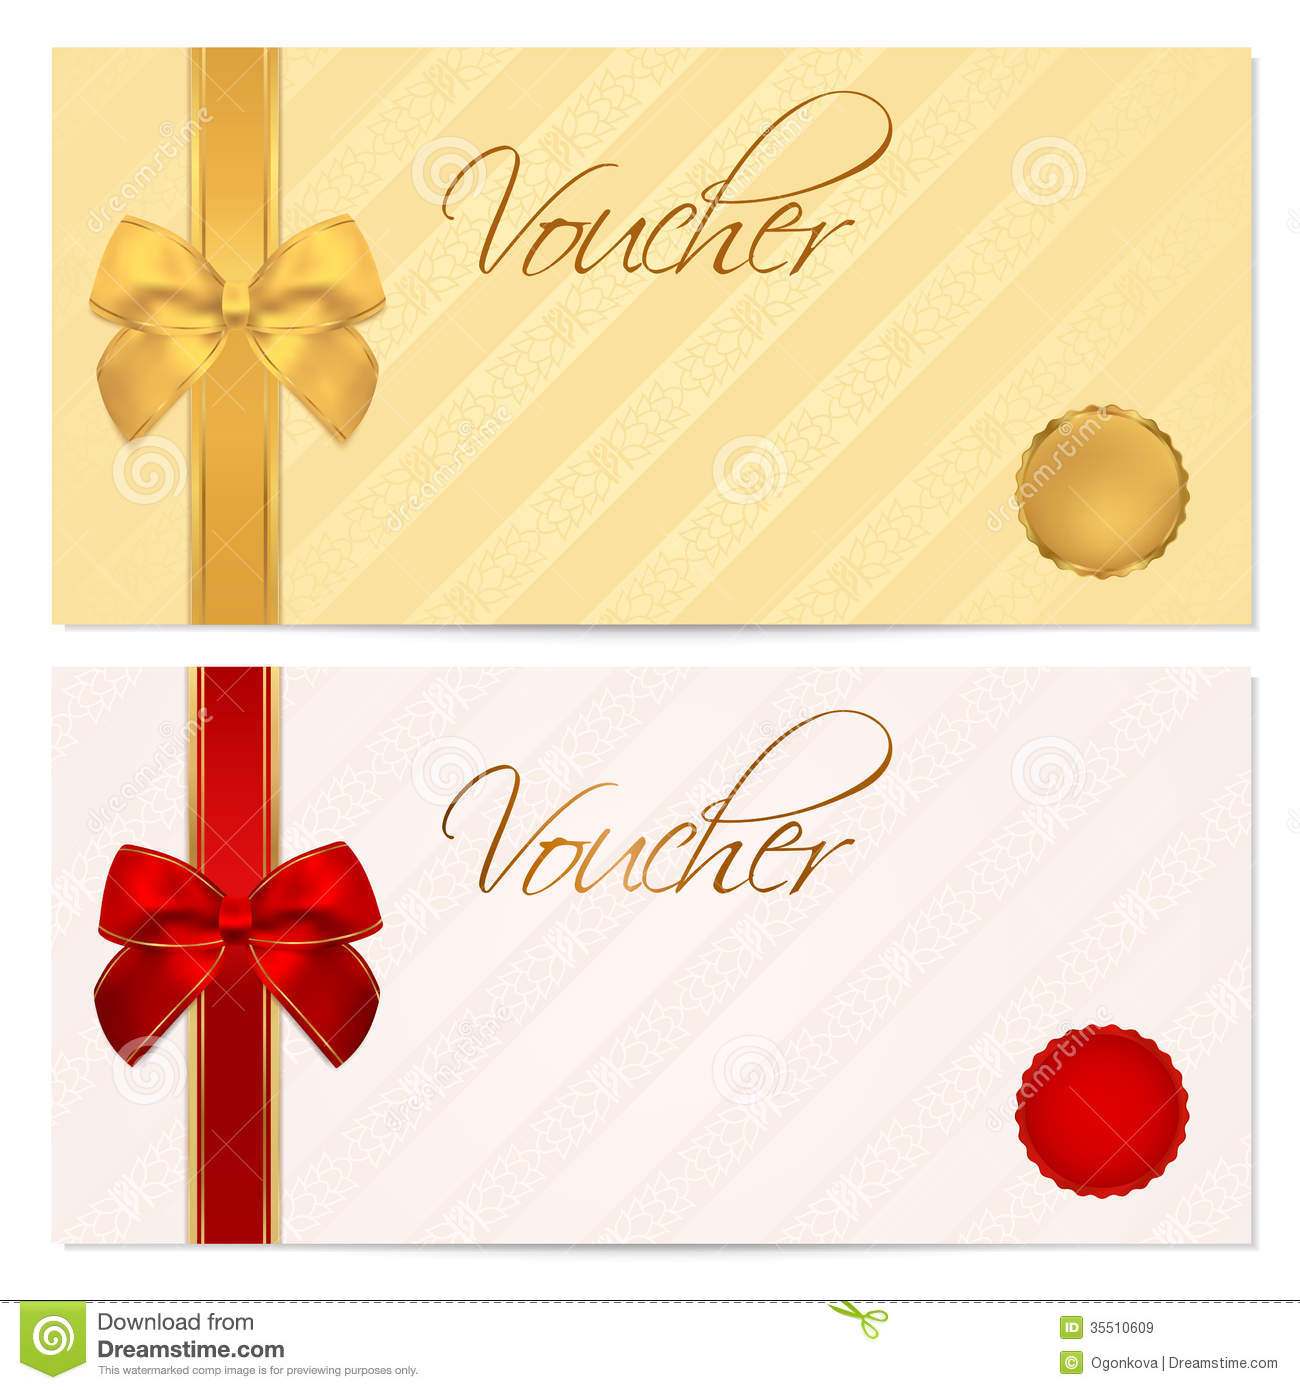 Delightful Voucher, Gift Certificate, Coupon Template. Bow For Money Voucher Template